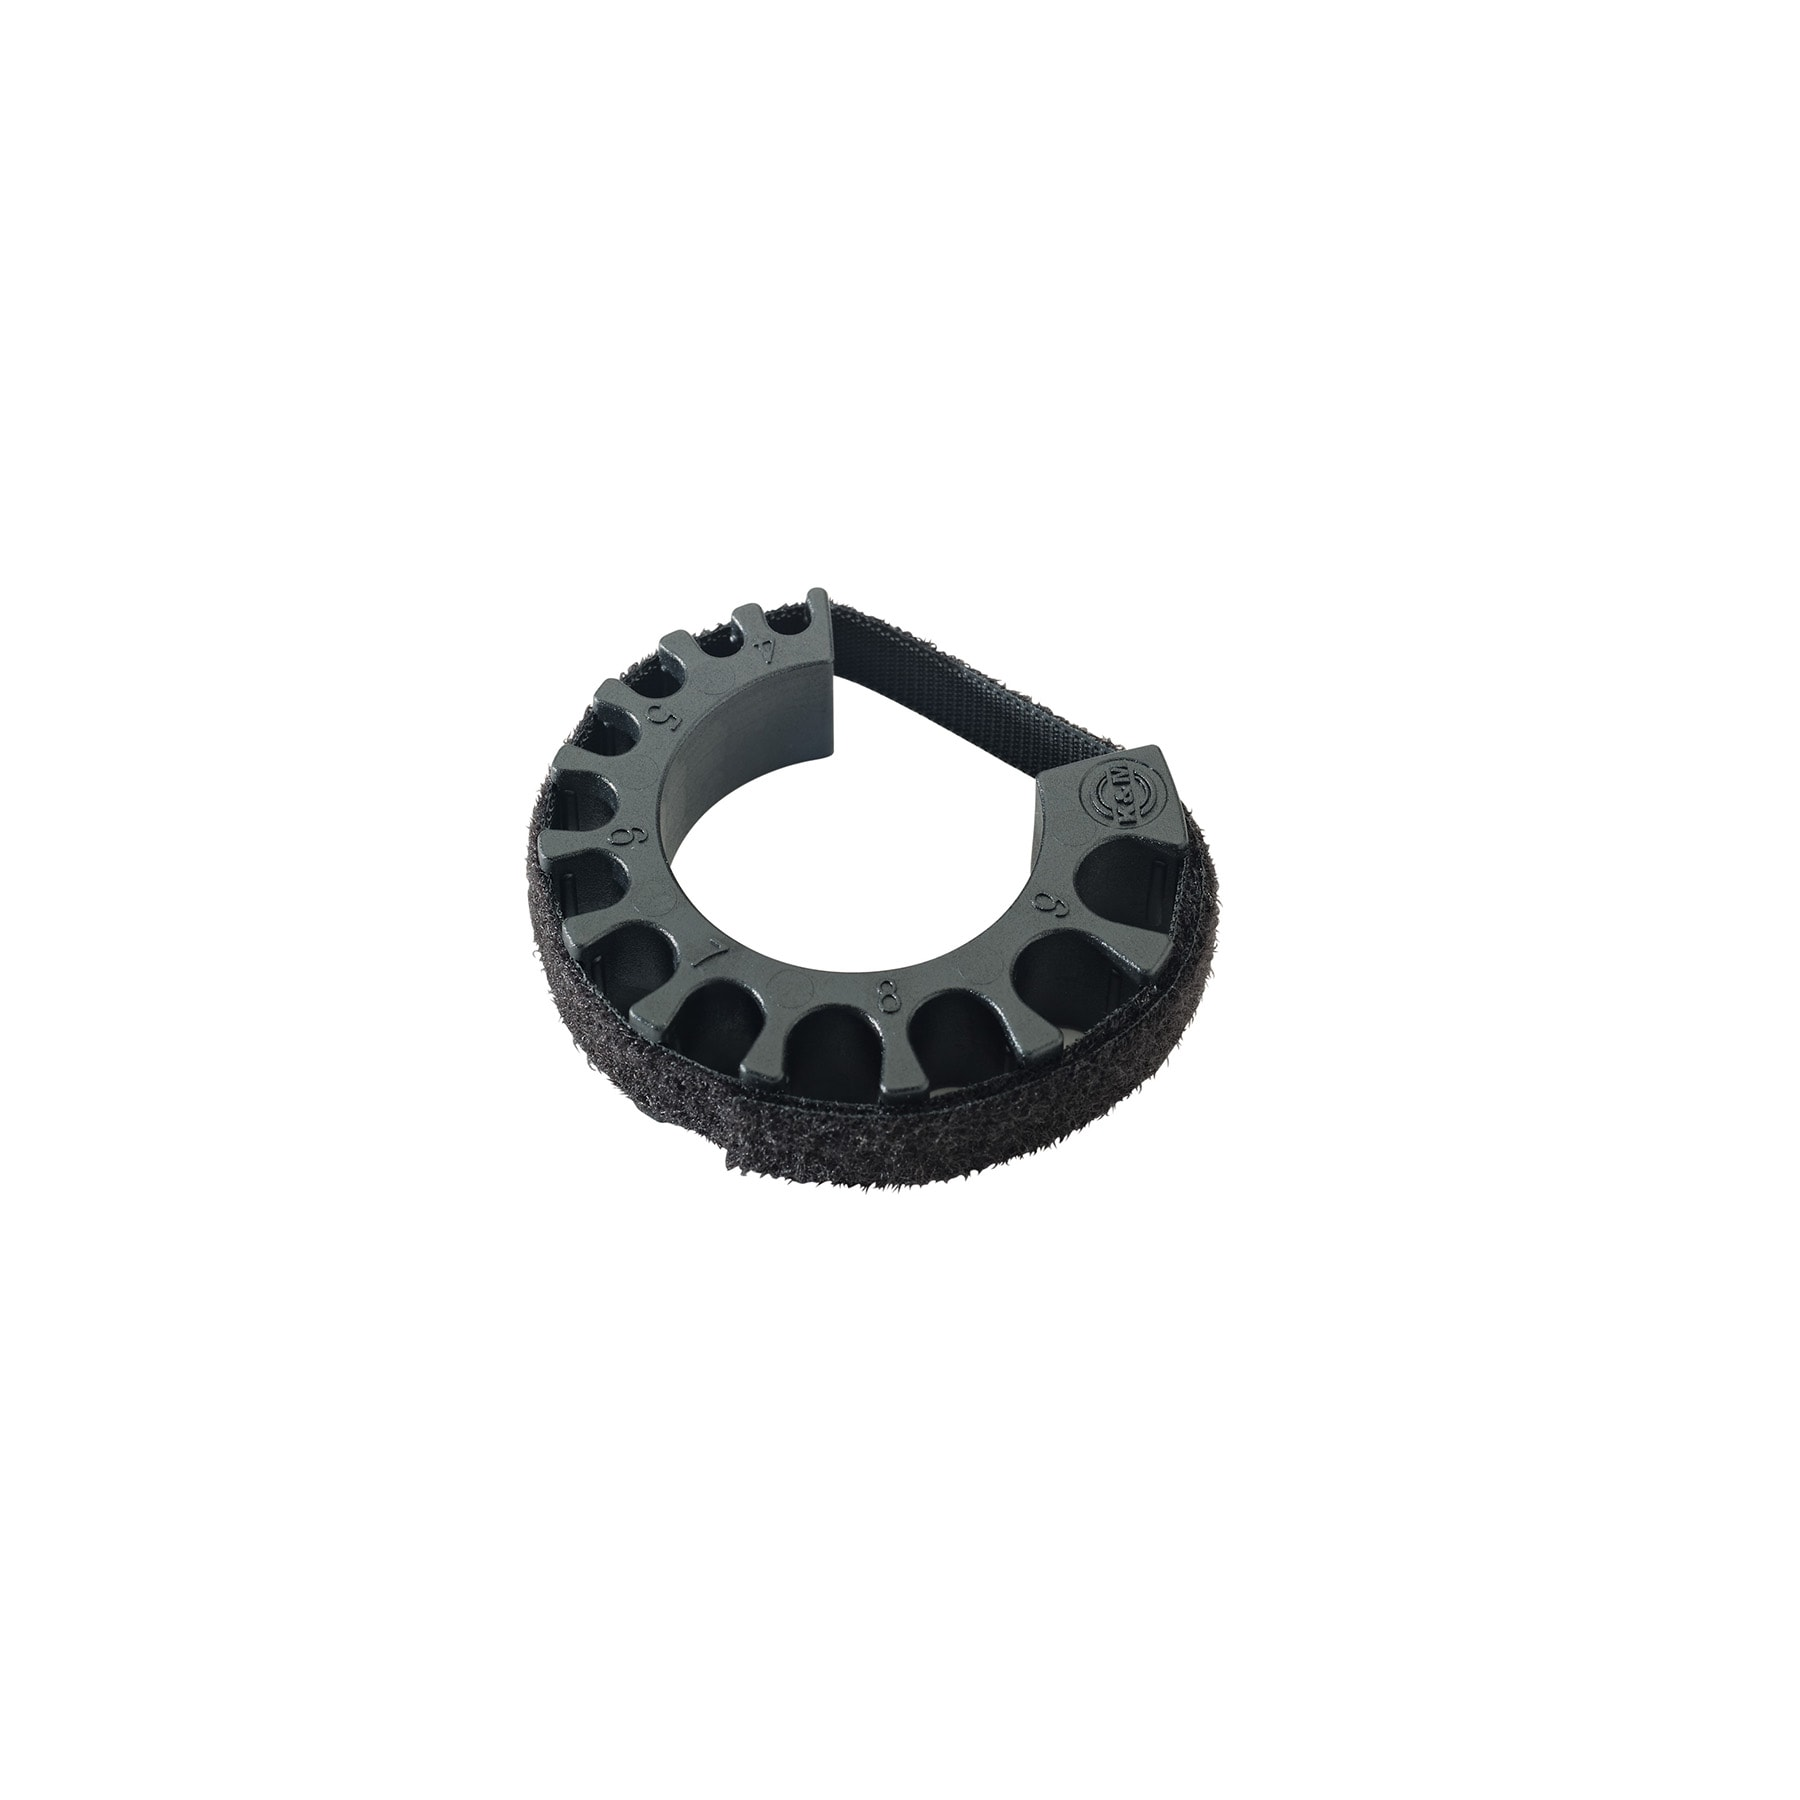 KM21404 - Cable clamp